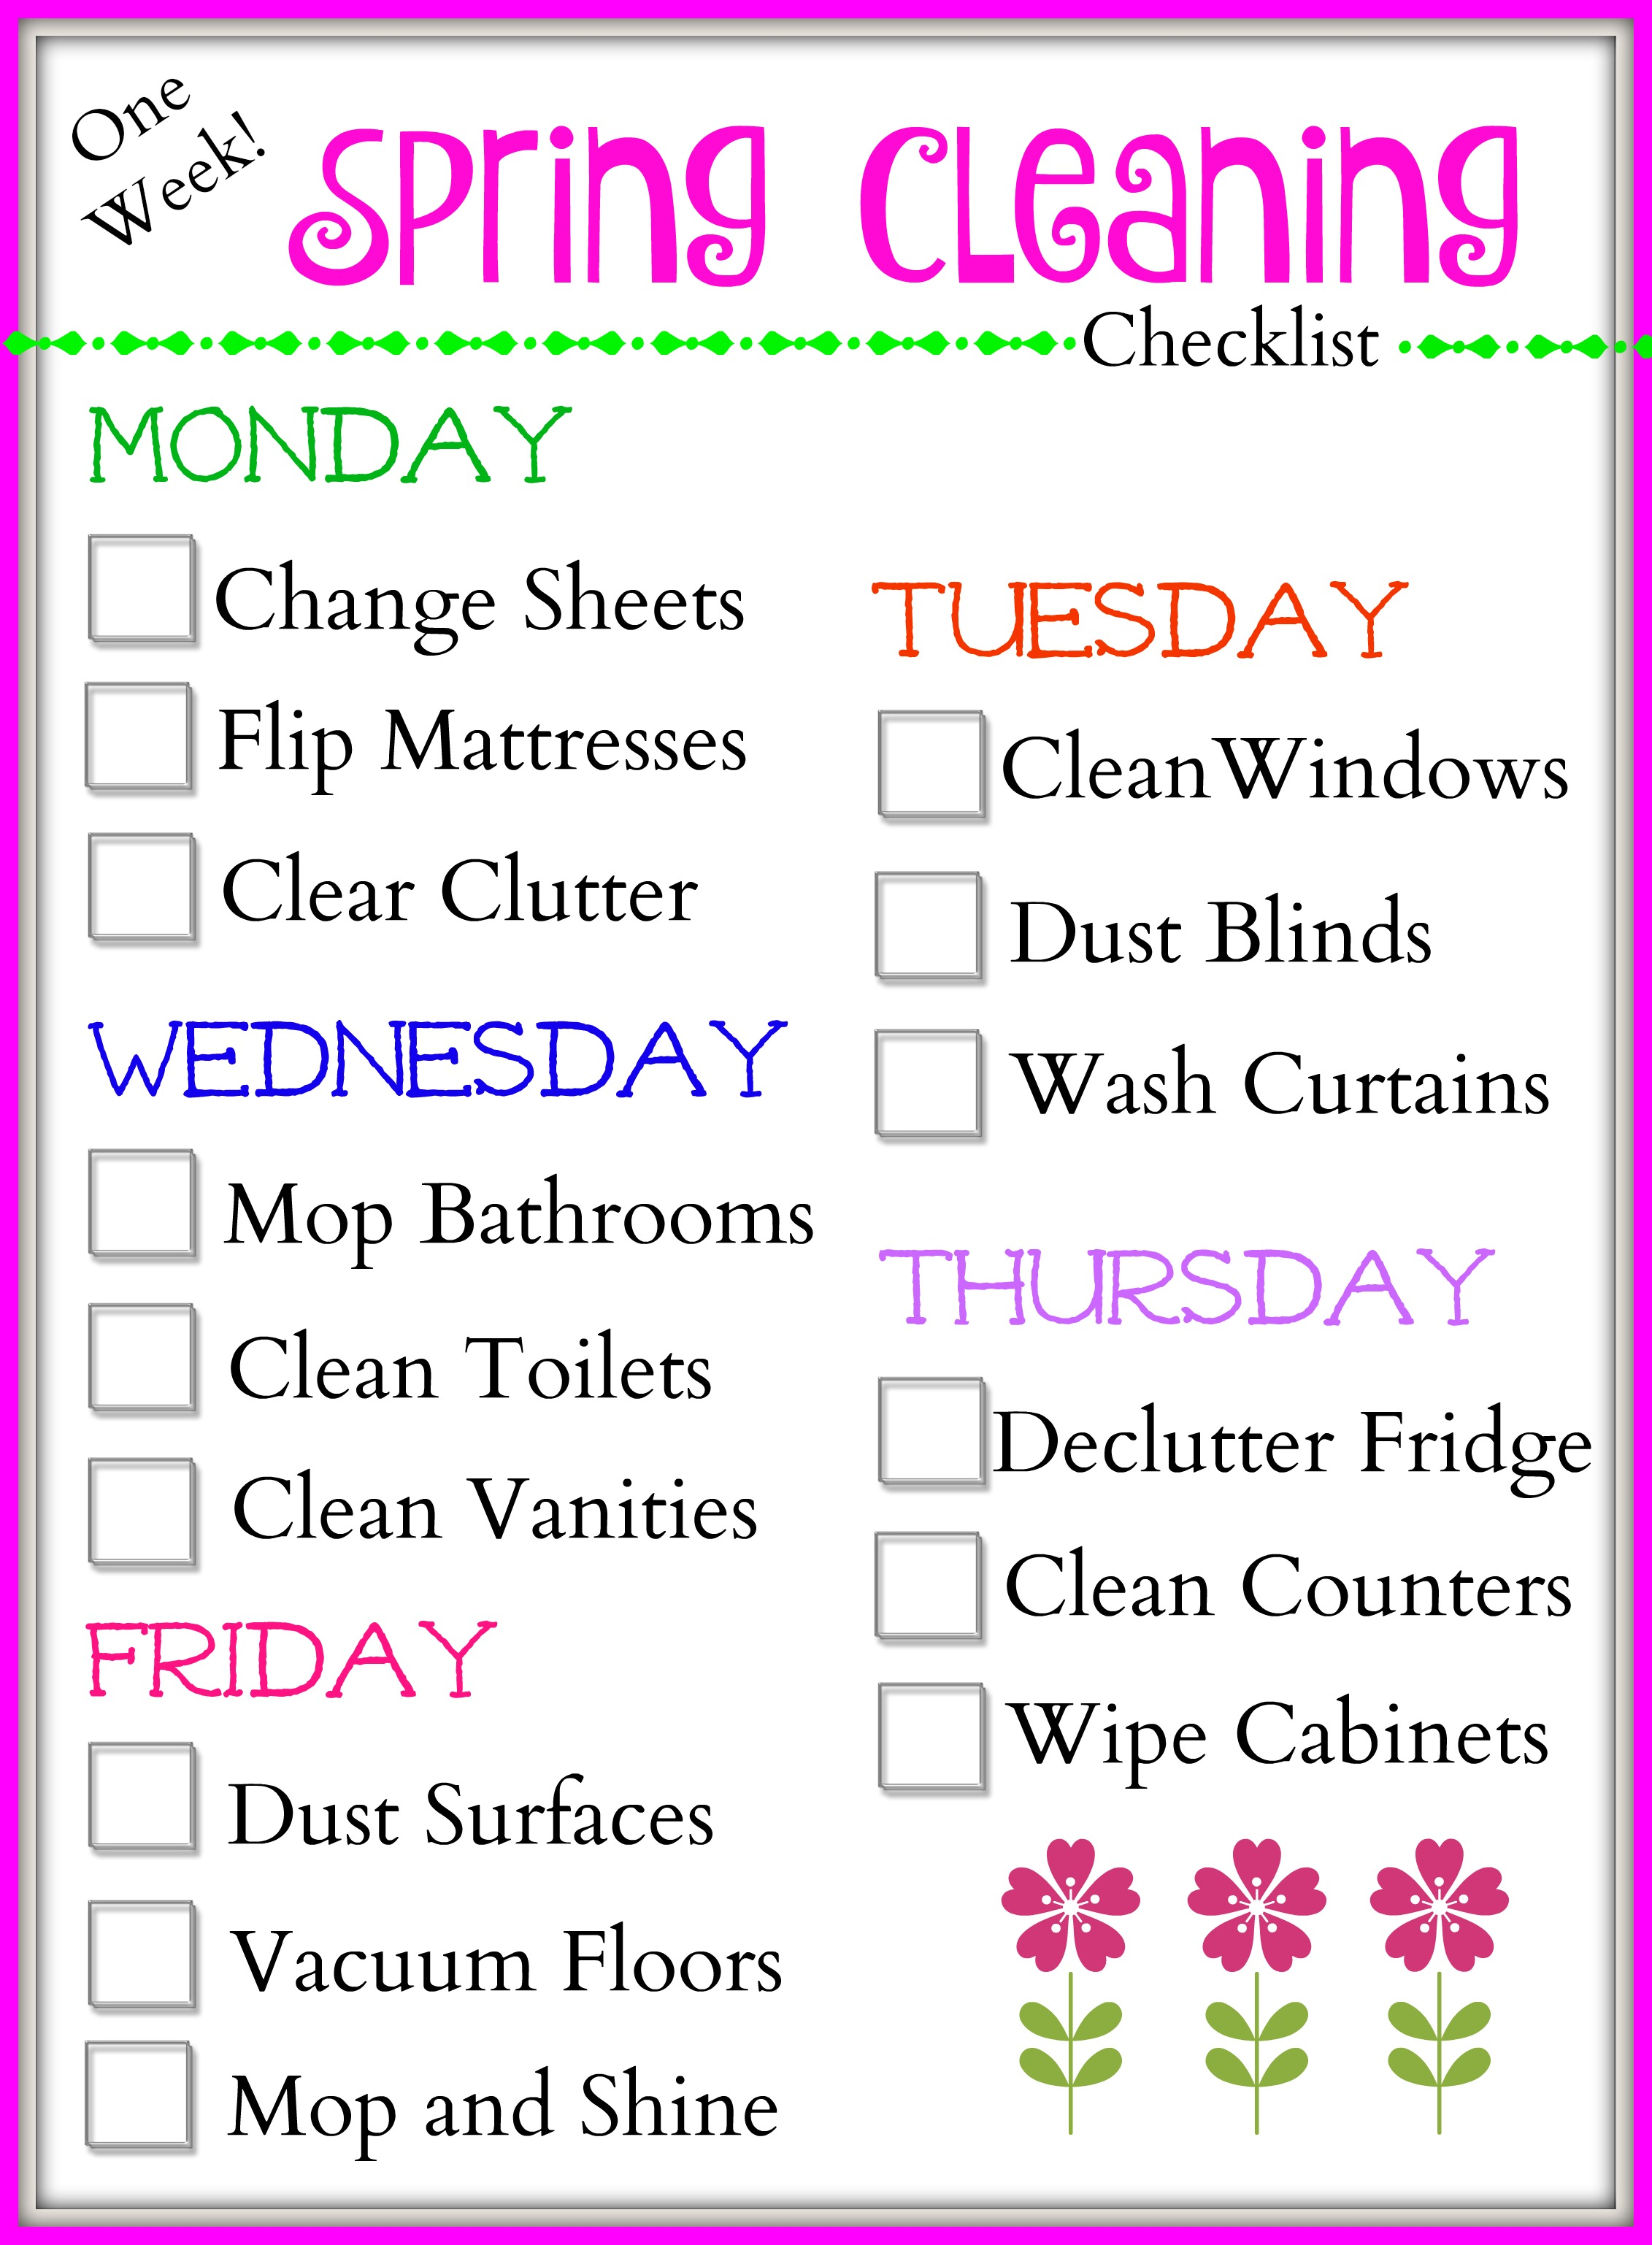 Tips for Cleaning Quickly a Spring Cleaning Checklist The – Sample Spring Cleaning Checklist